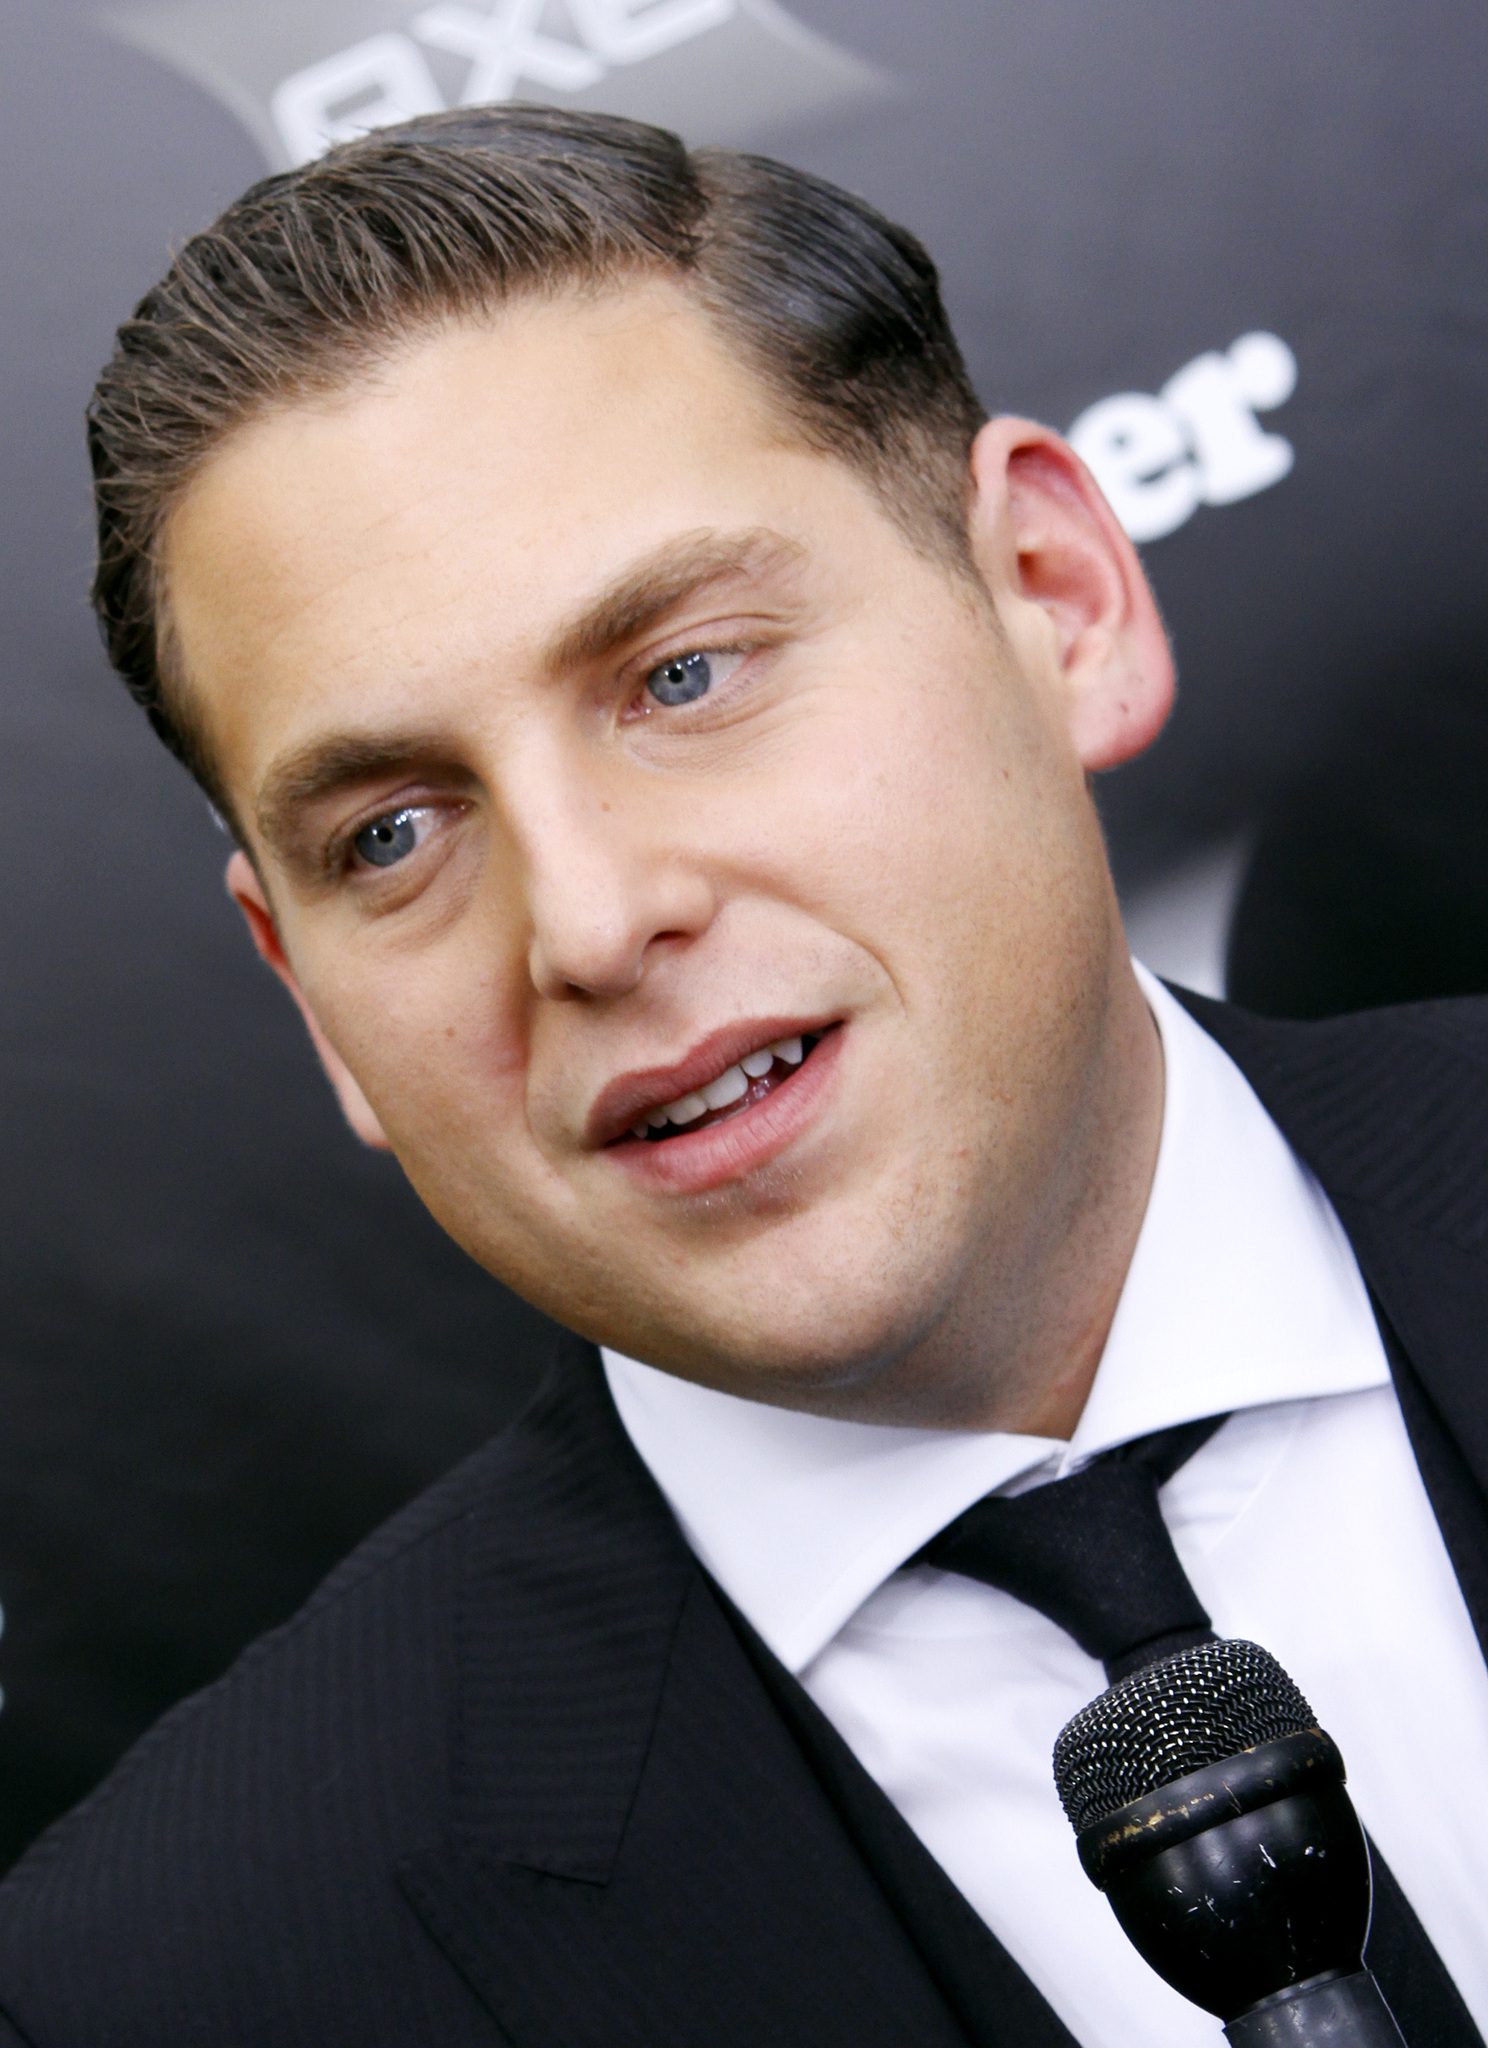 Jonah Hill at an event for The Sitter (2011)